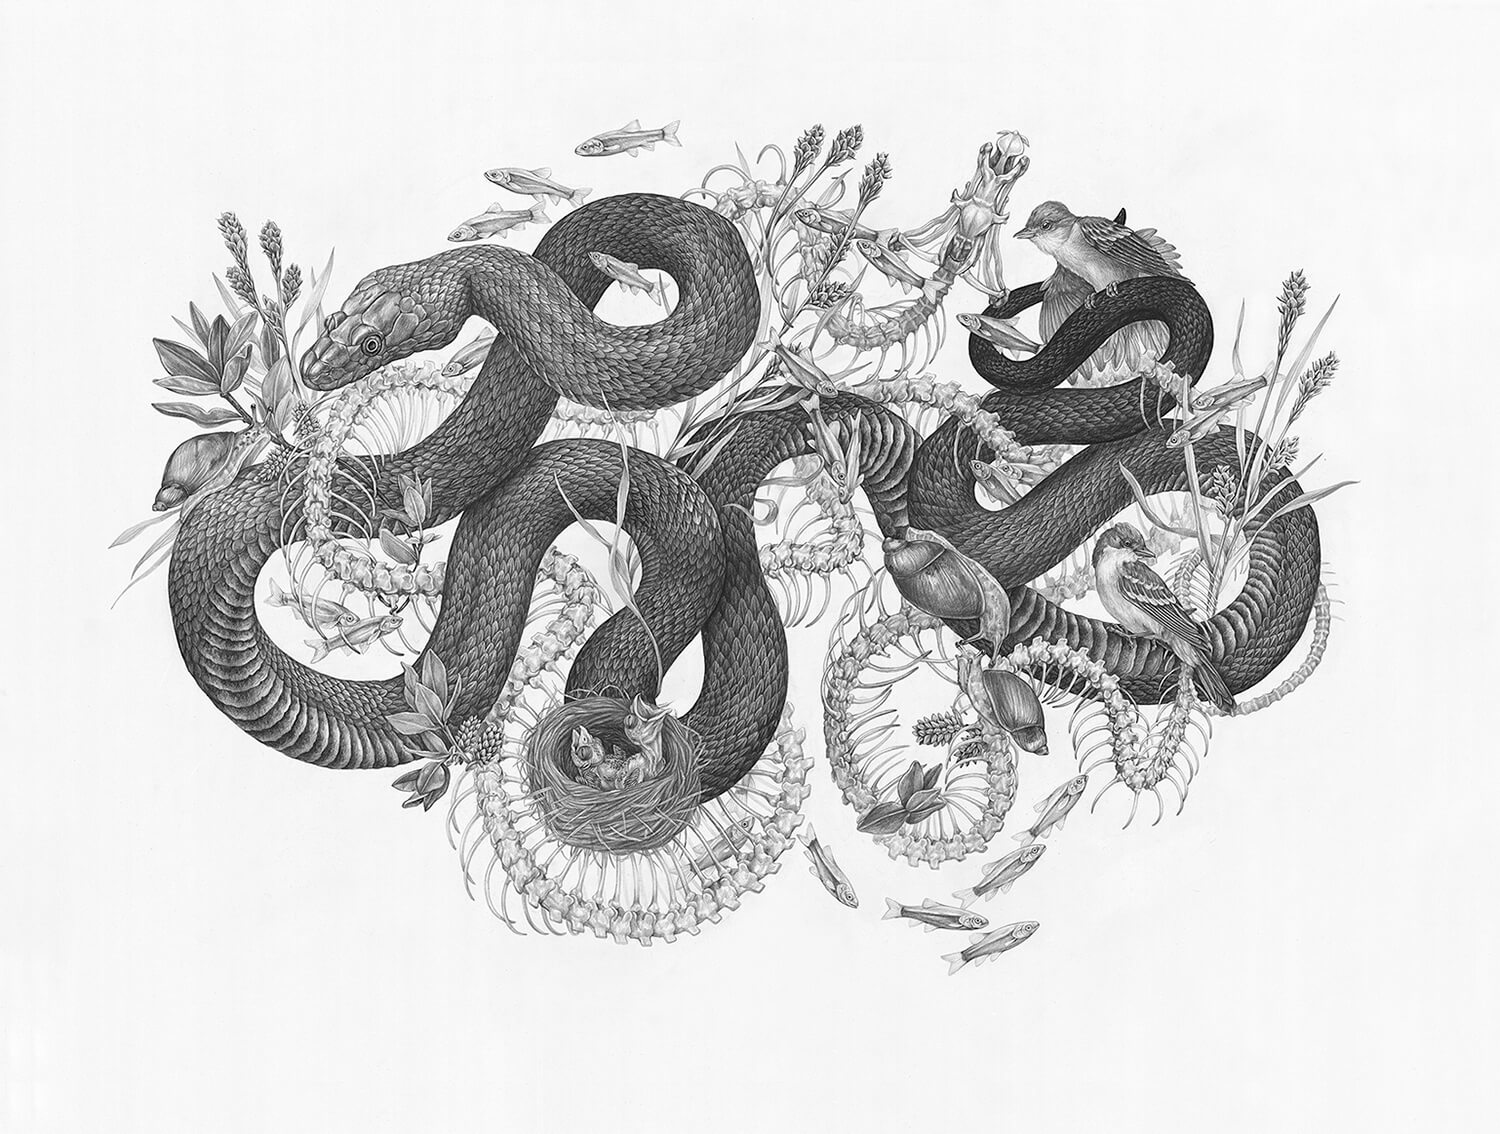 Drawing of snakes